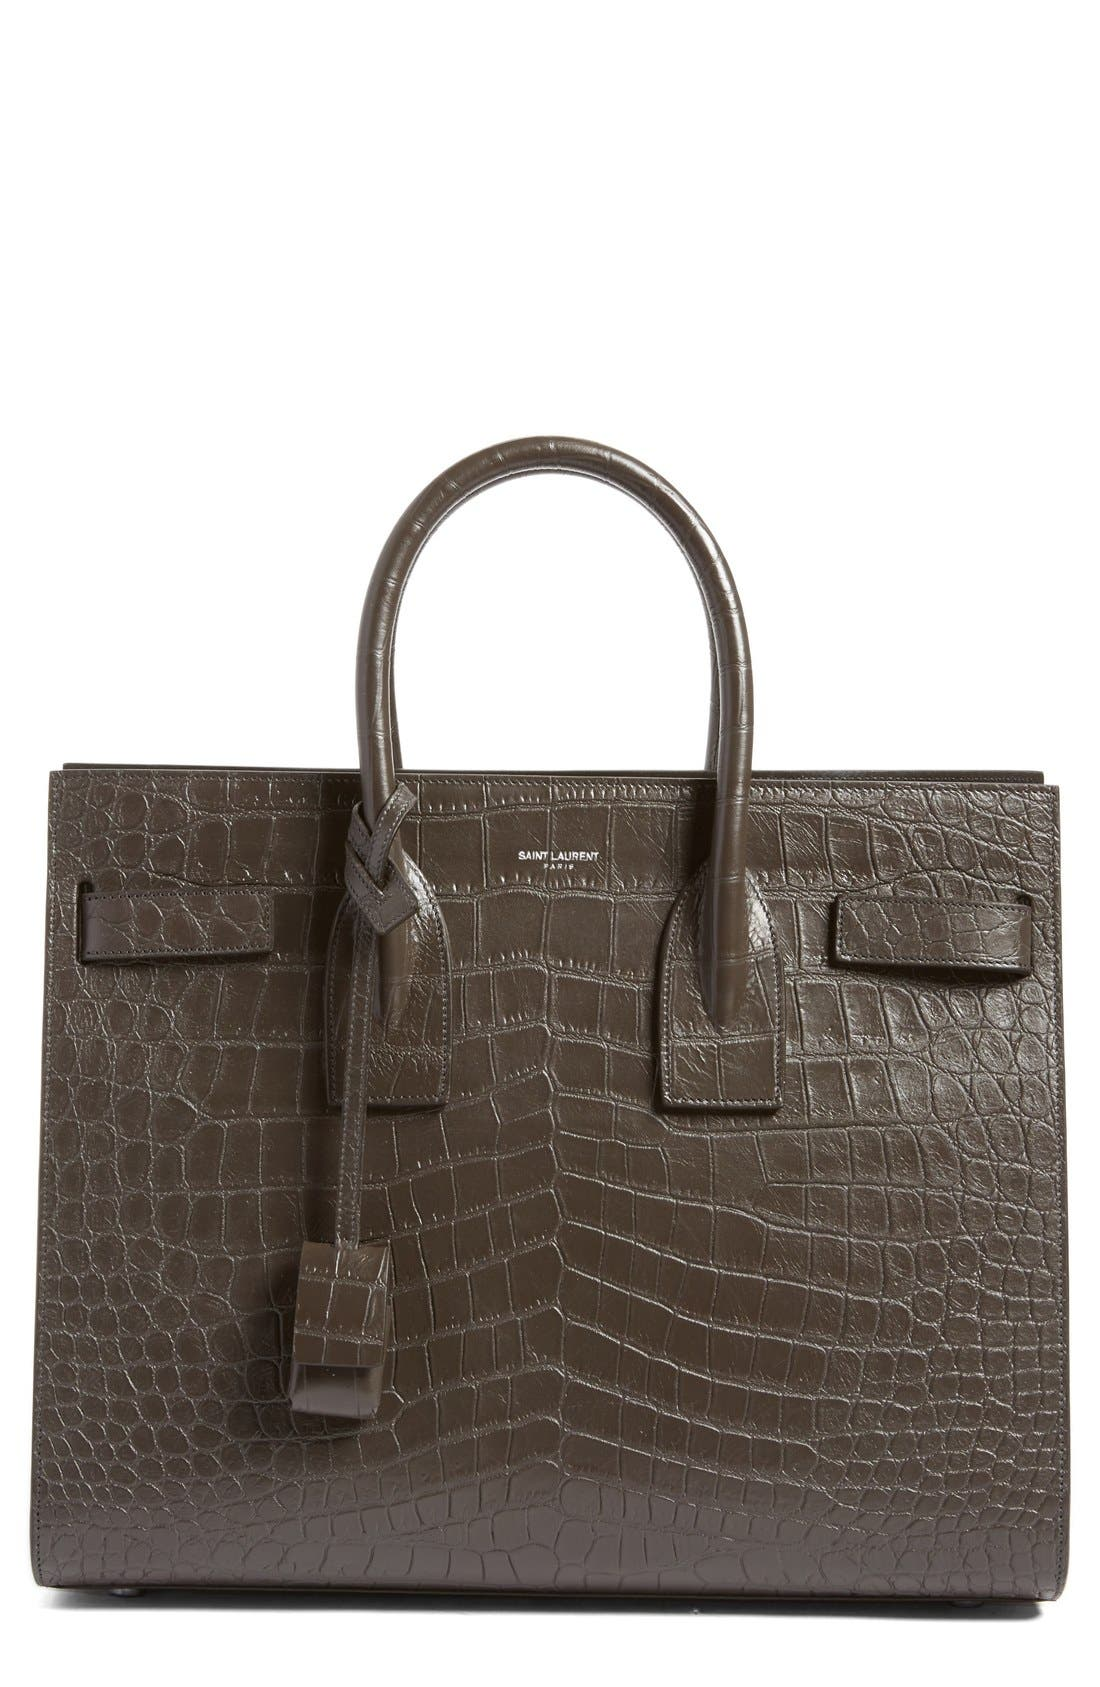 Saint Laurent 'Small Sac de Jour' Croc Embossed Leather Tote